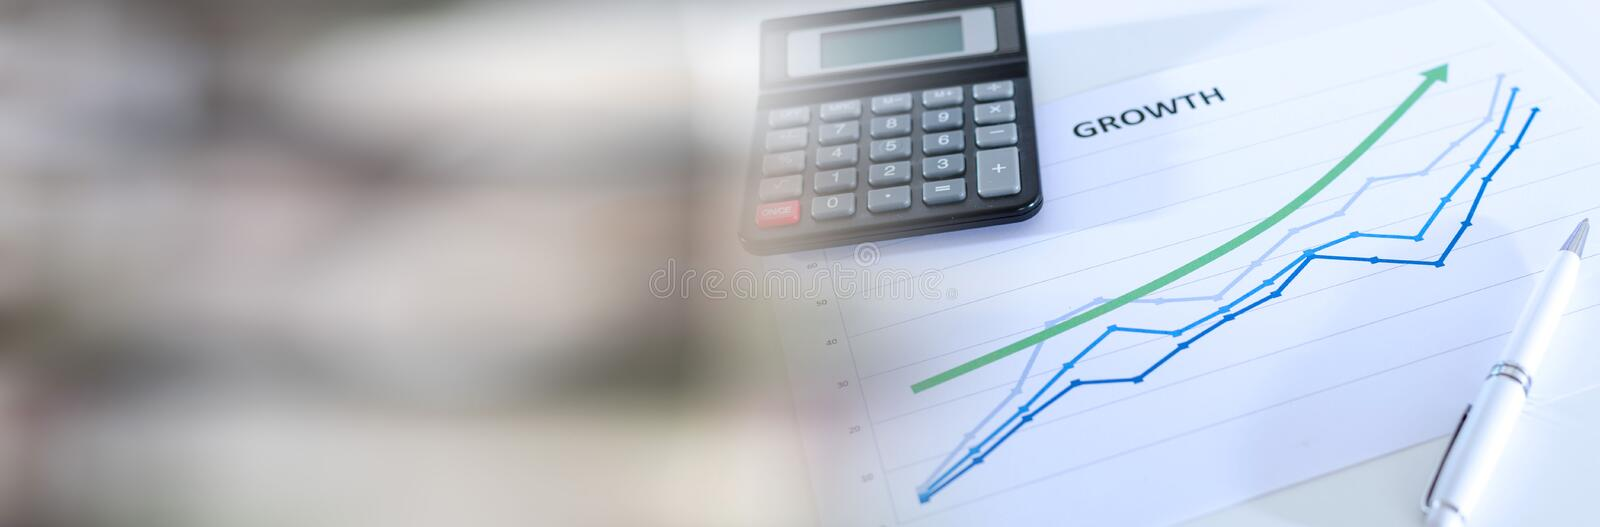 Financial graphs showing growth with calculator. panoramic banner. Financial graphs showing growth with calculator closeup. panoramic banner royalty free stock image